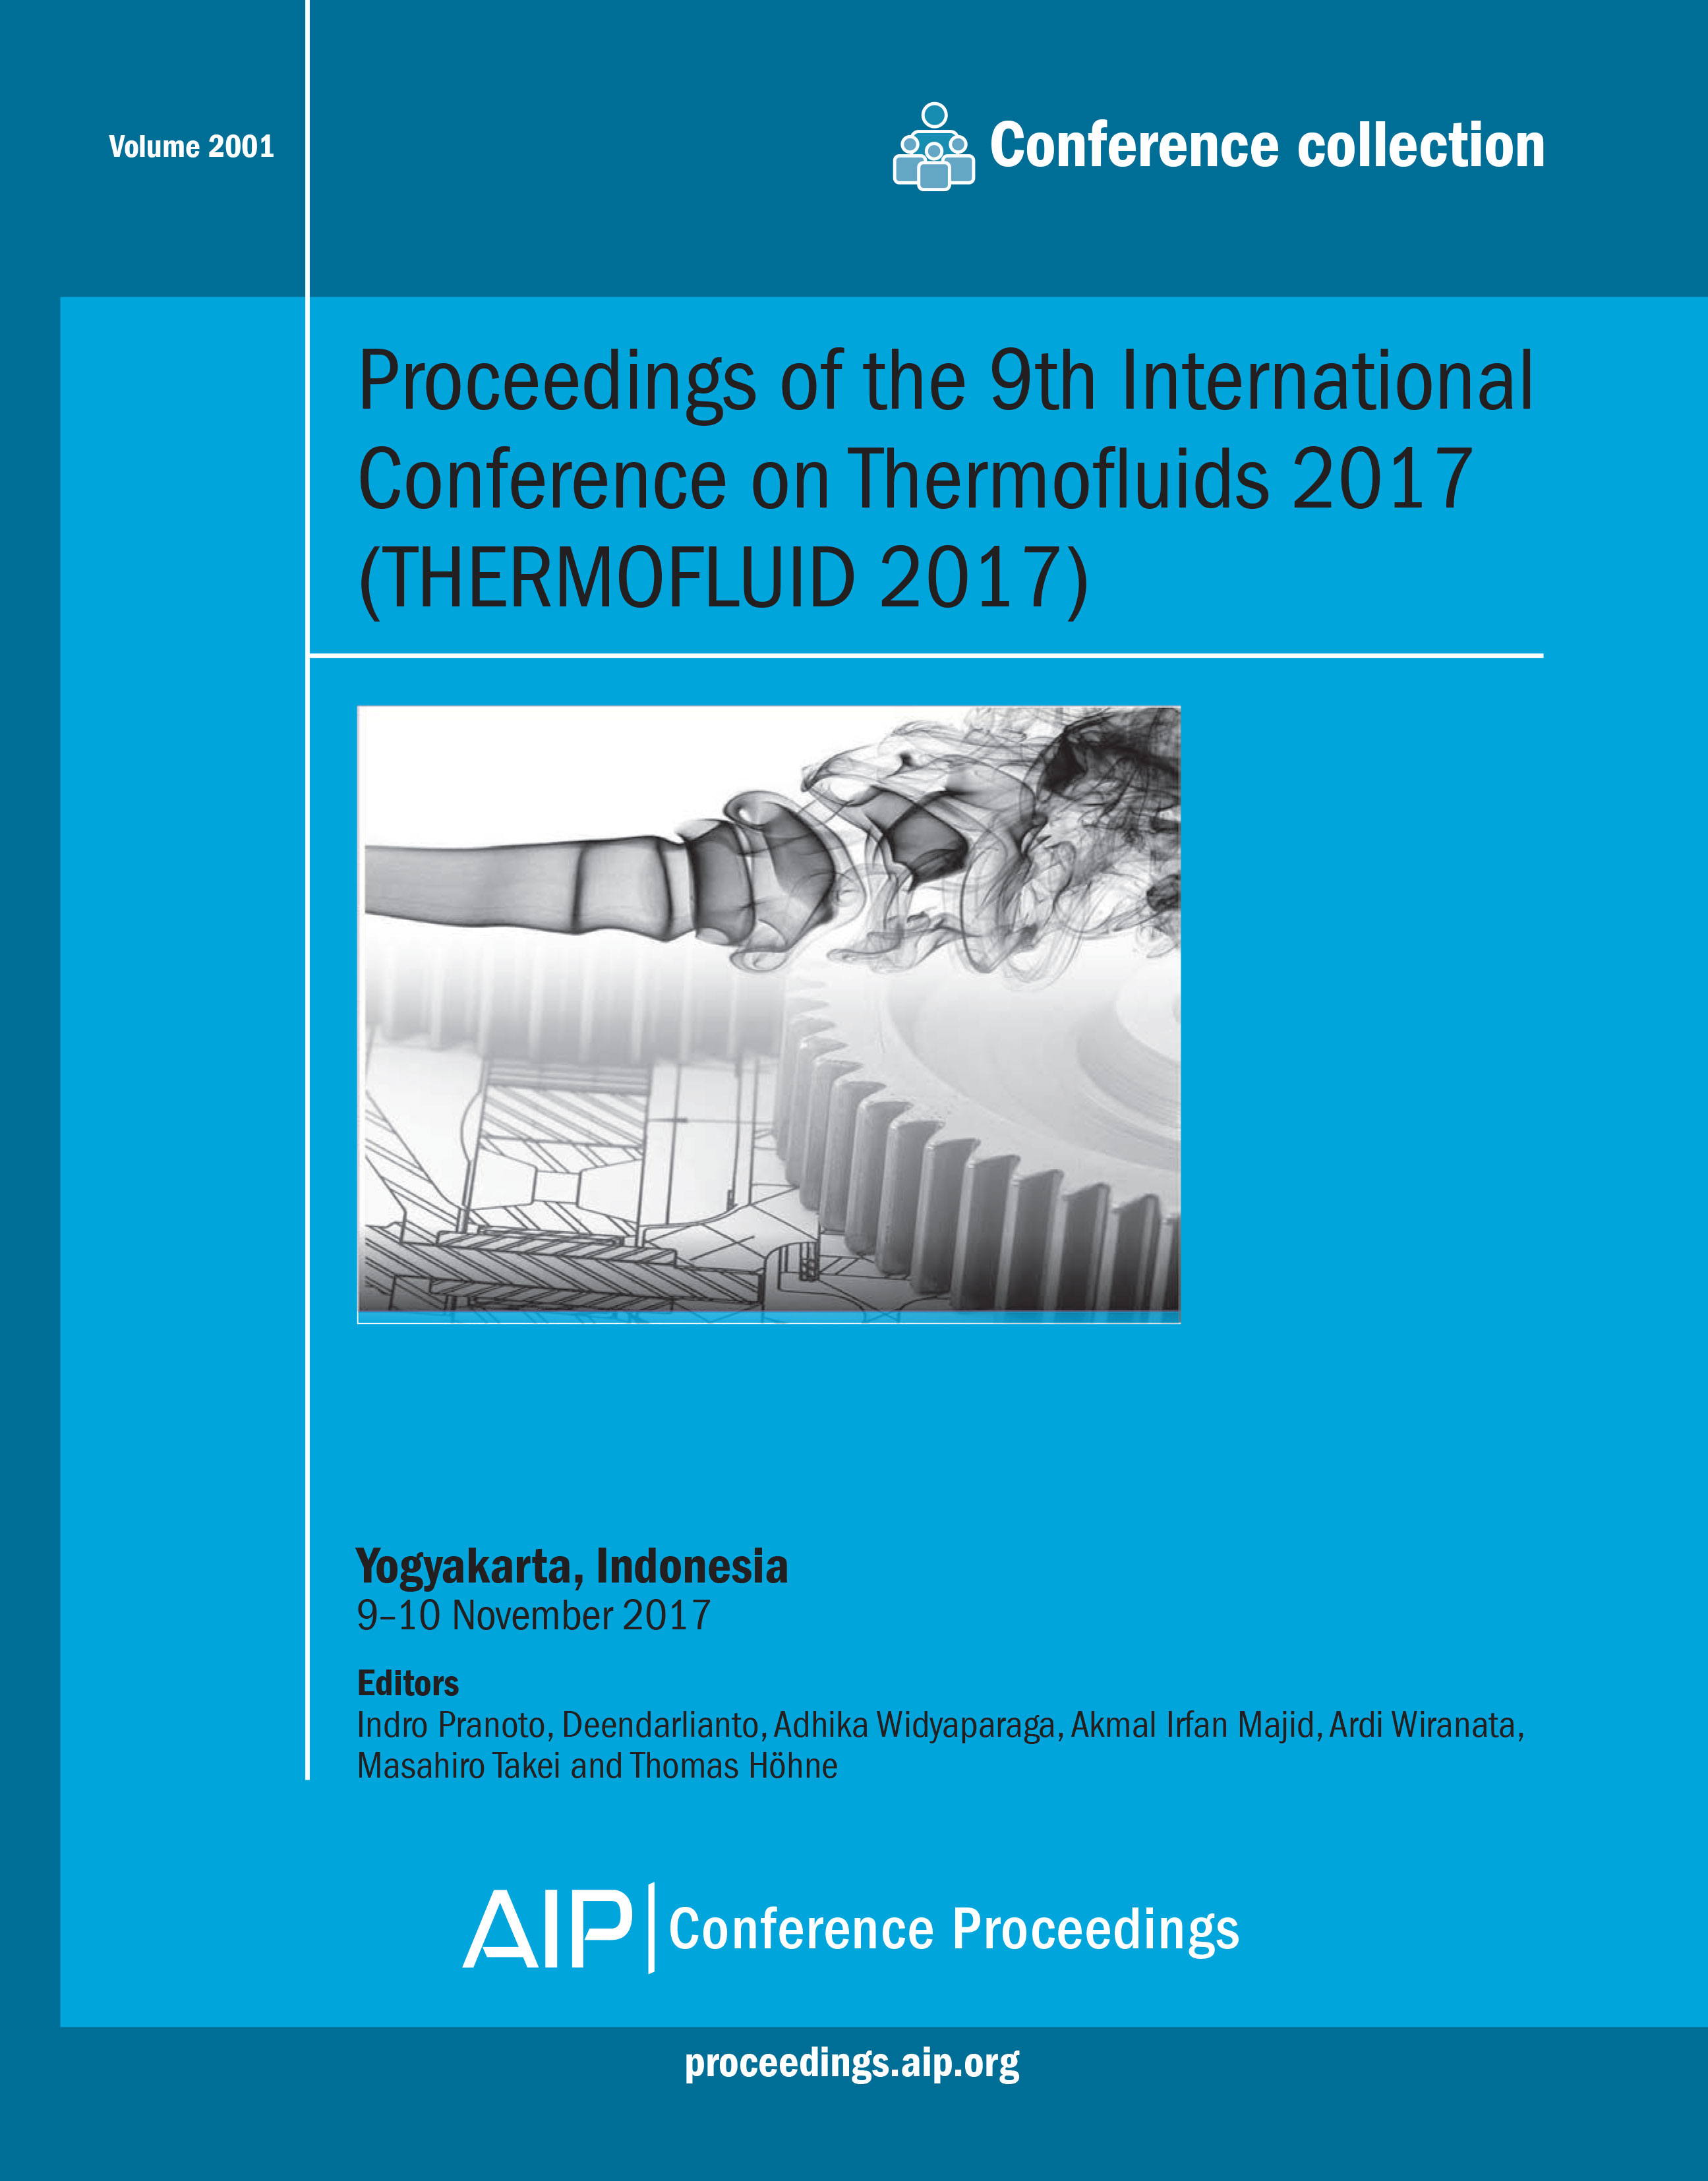 Preface: Proceedings of the 9th International Conference on